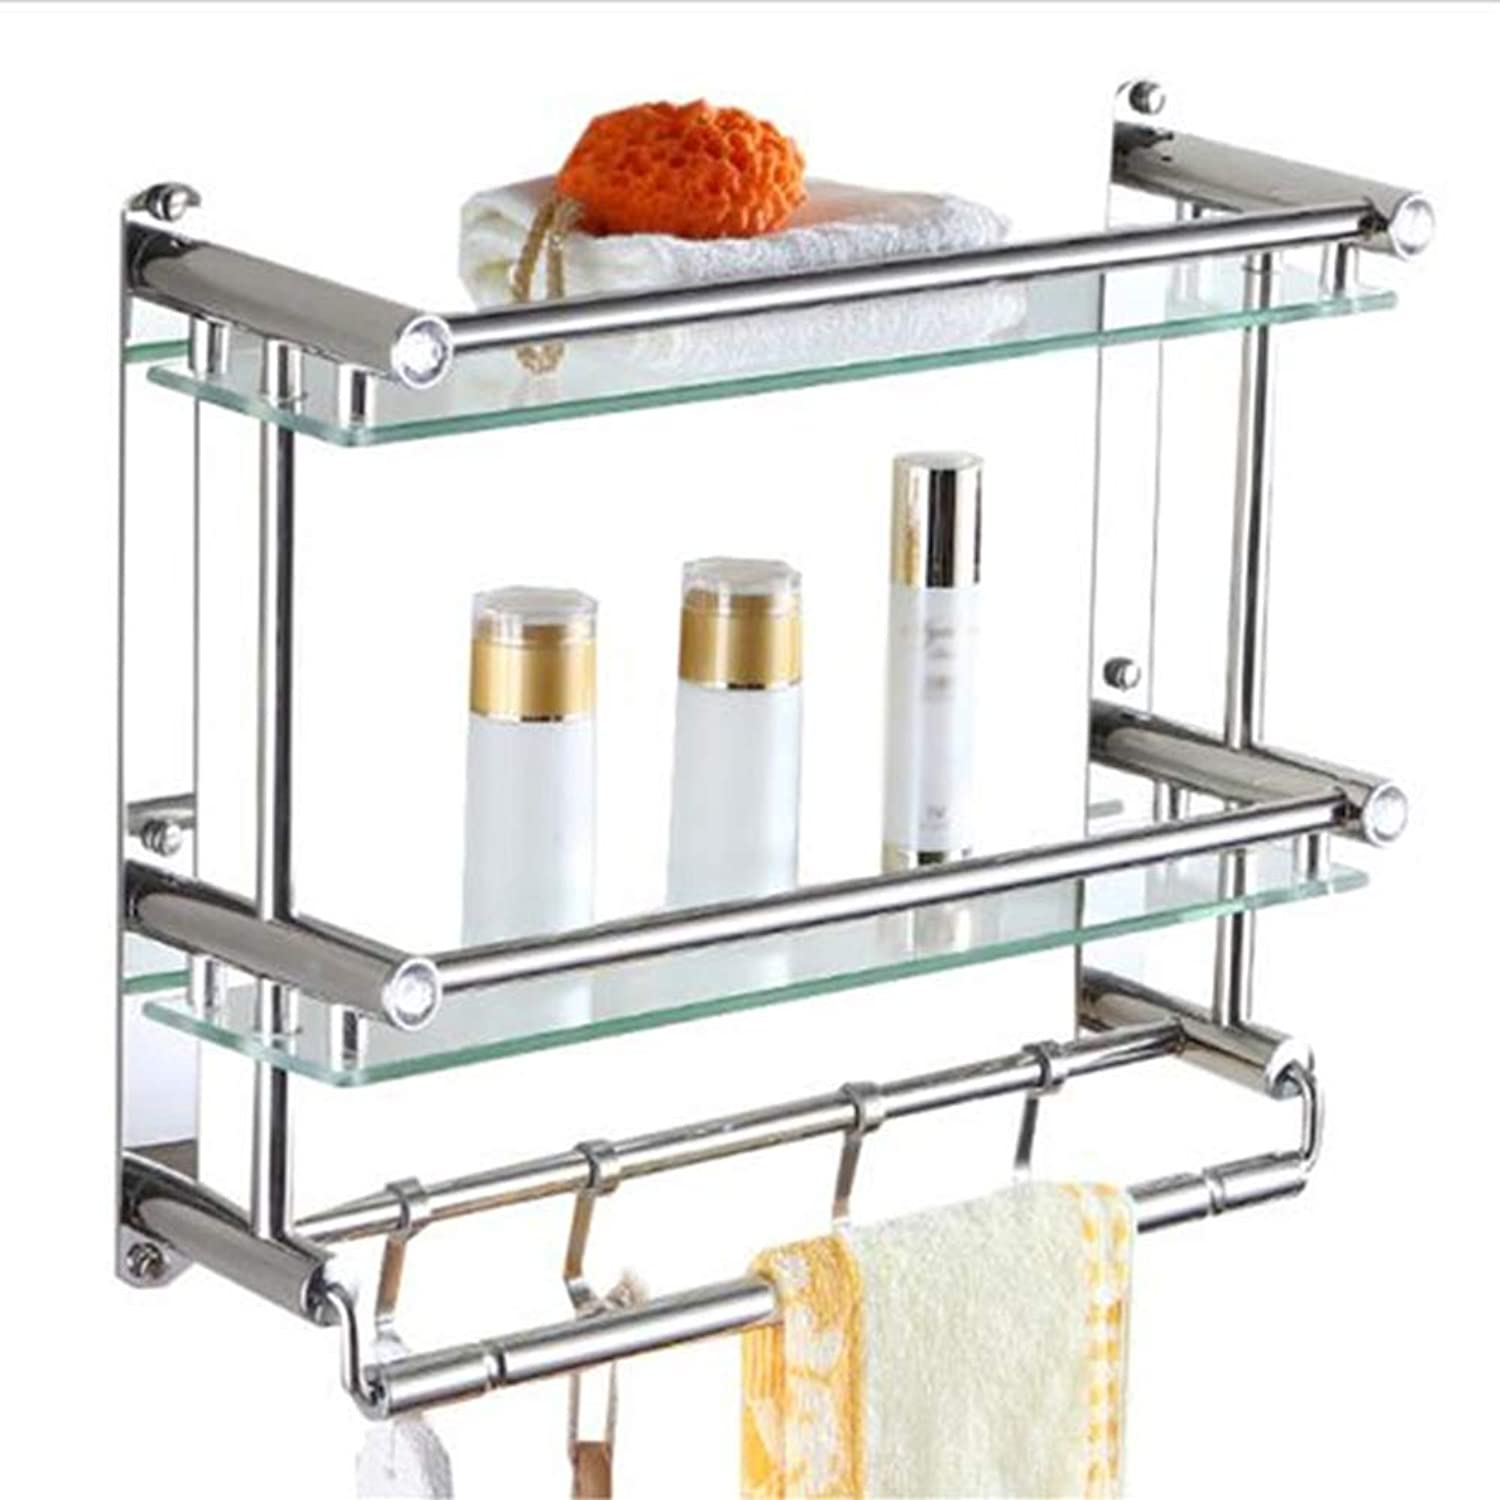 ZHANWEI Bathroom Shelf Shower Organiser Wall-Mounted Tempered Glass Tower Hanger Hook Up Stainless Steel Toilet 1 2 3 Tiers (color   Layer 2, Size   58CM)